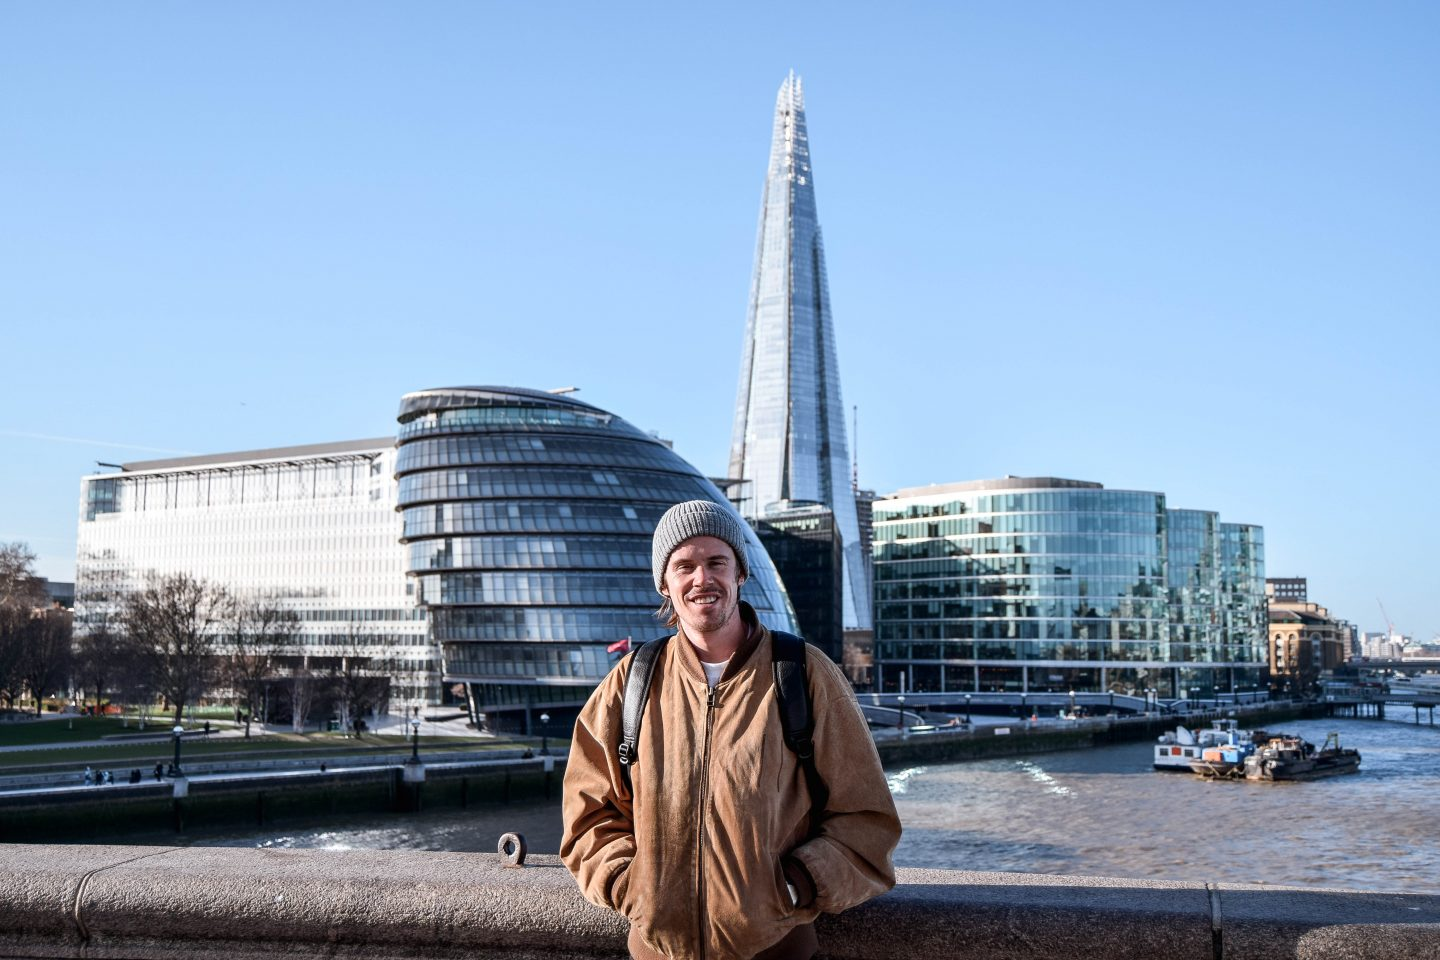 The Shard From Tower Bridge 4 Day London Itinerary